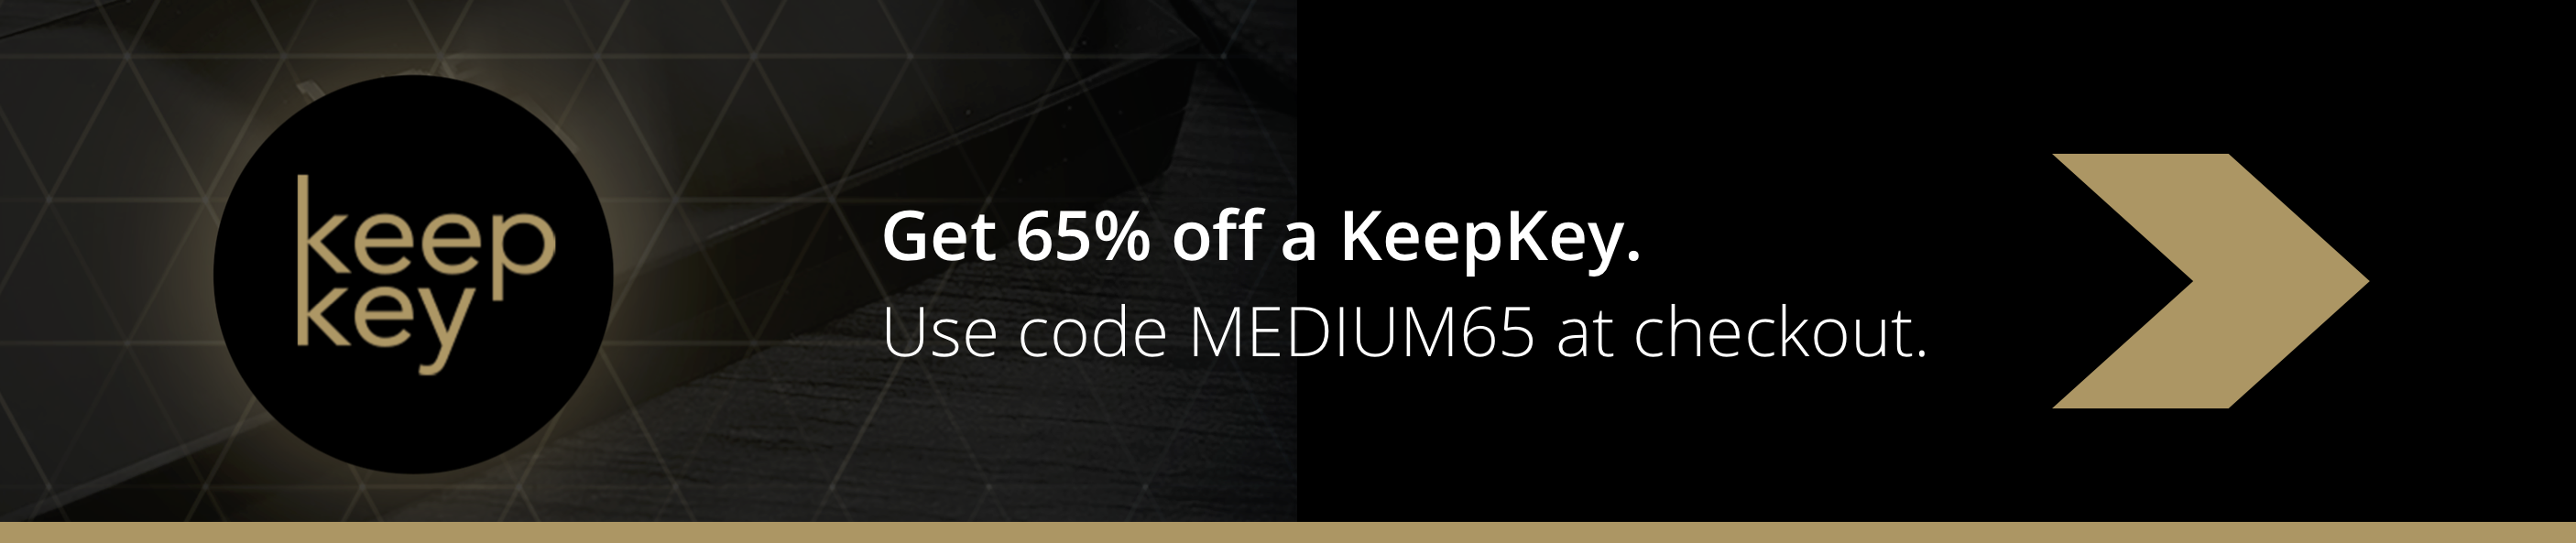 Use the discount code MEDIUM65 for 65% off a KeepKey Hardware Wallet.